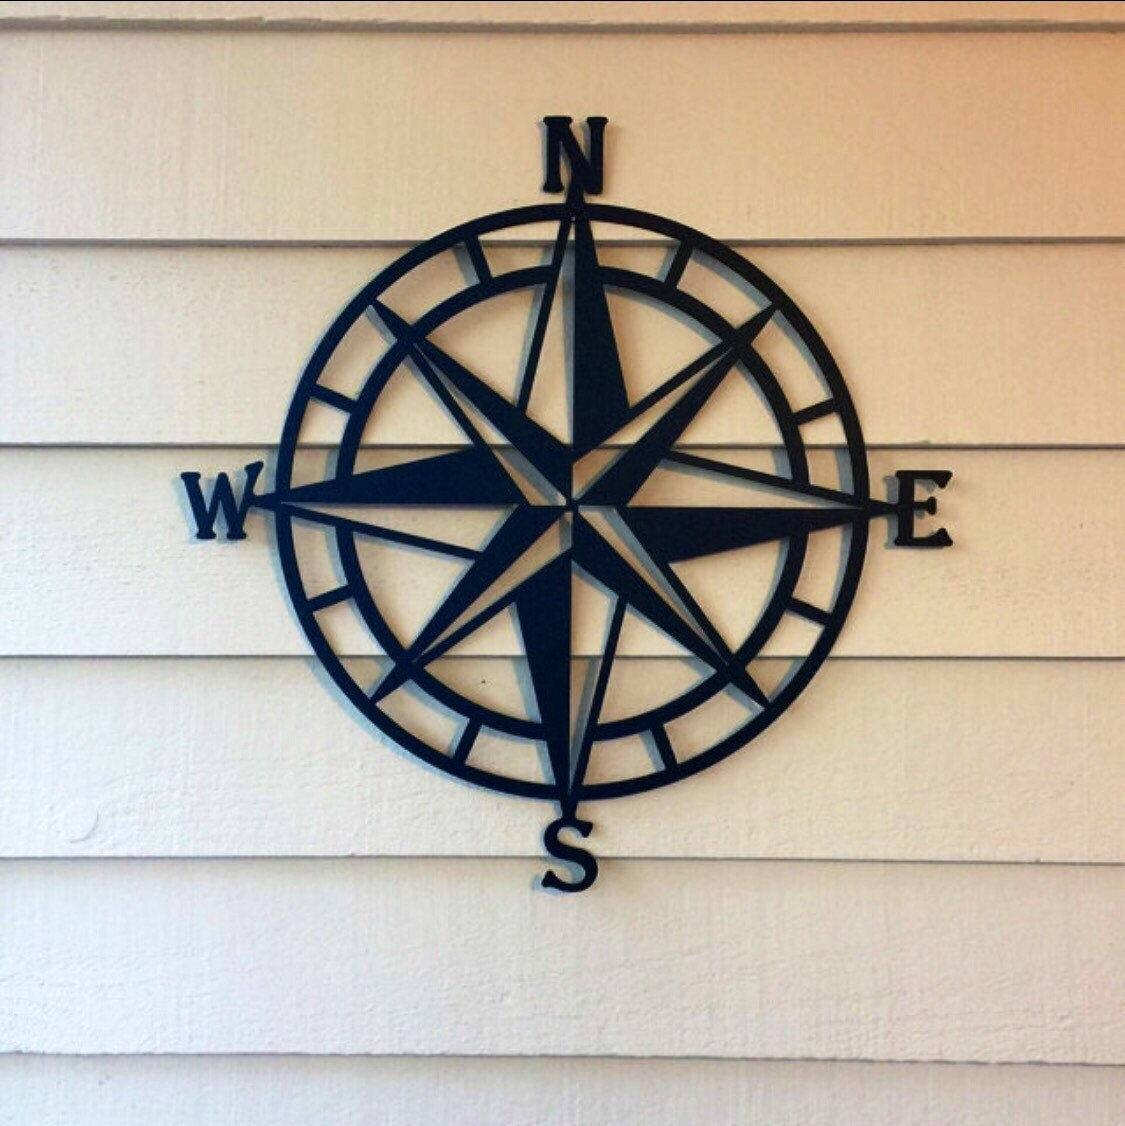 Metal Wall Art Decor | Roselawnlutheran Intended For Most Recently Released Nautical Metal Wall Art (View 13 of 20)